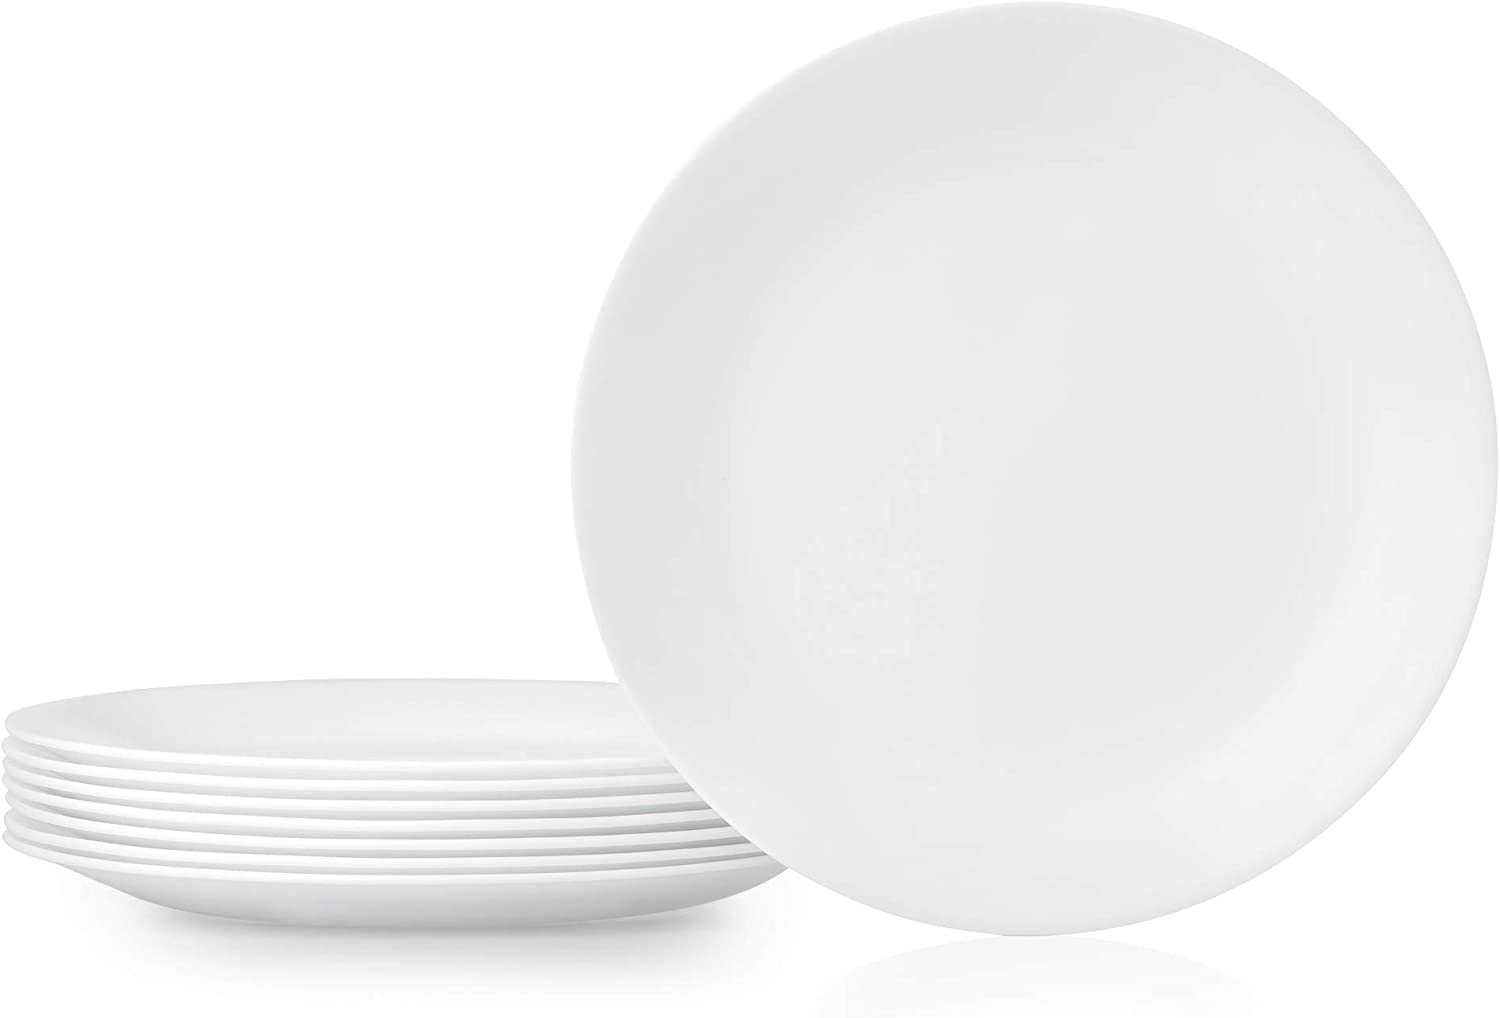 Corelle 1135857 Dinner Plates, 8-Piece, Winter Frost White